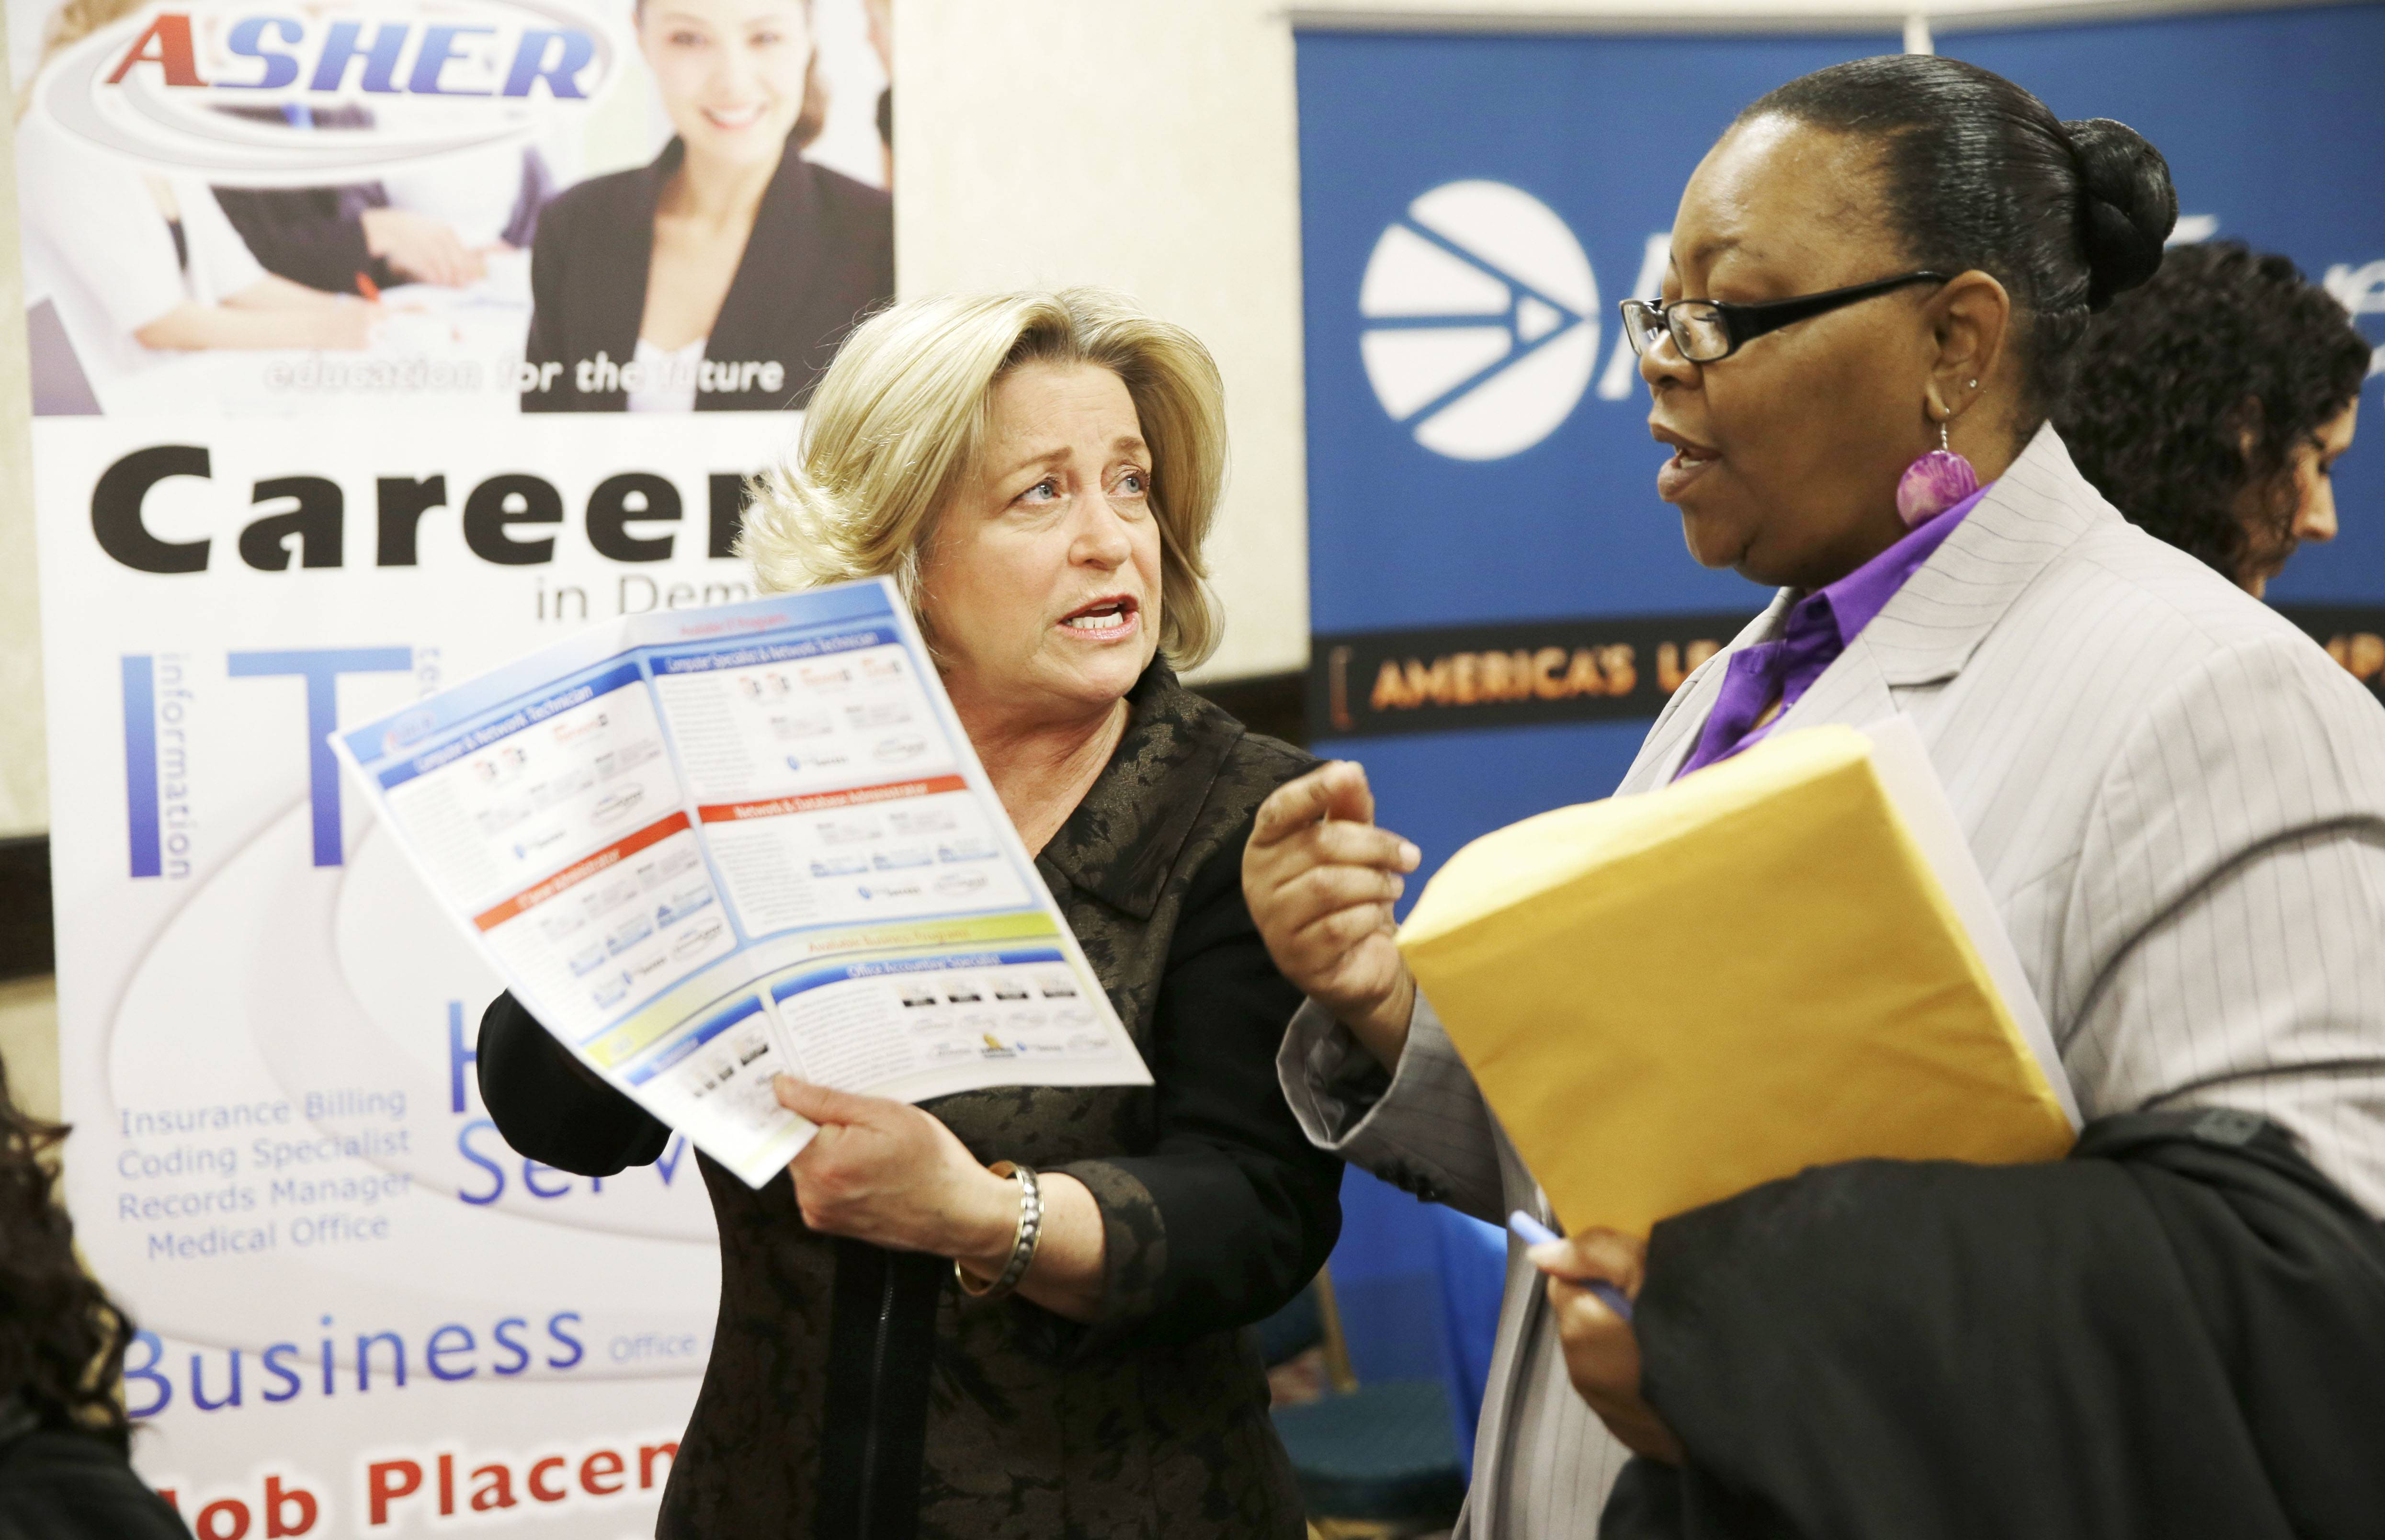 Recruiter Valera Kulow, left, speaks with job seeker Monic Spencer during a career fair in Dallas.